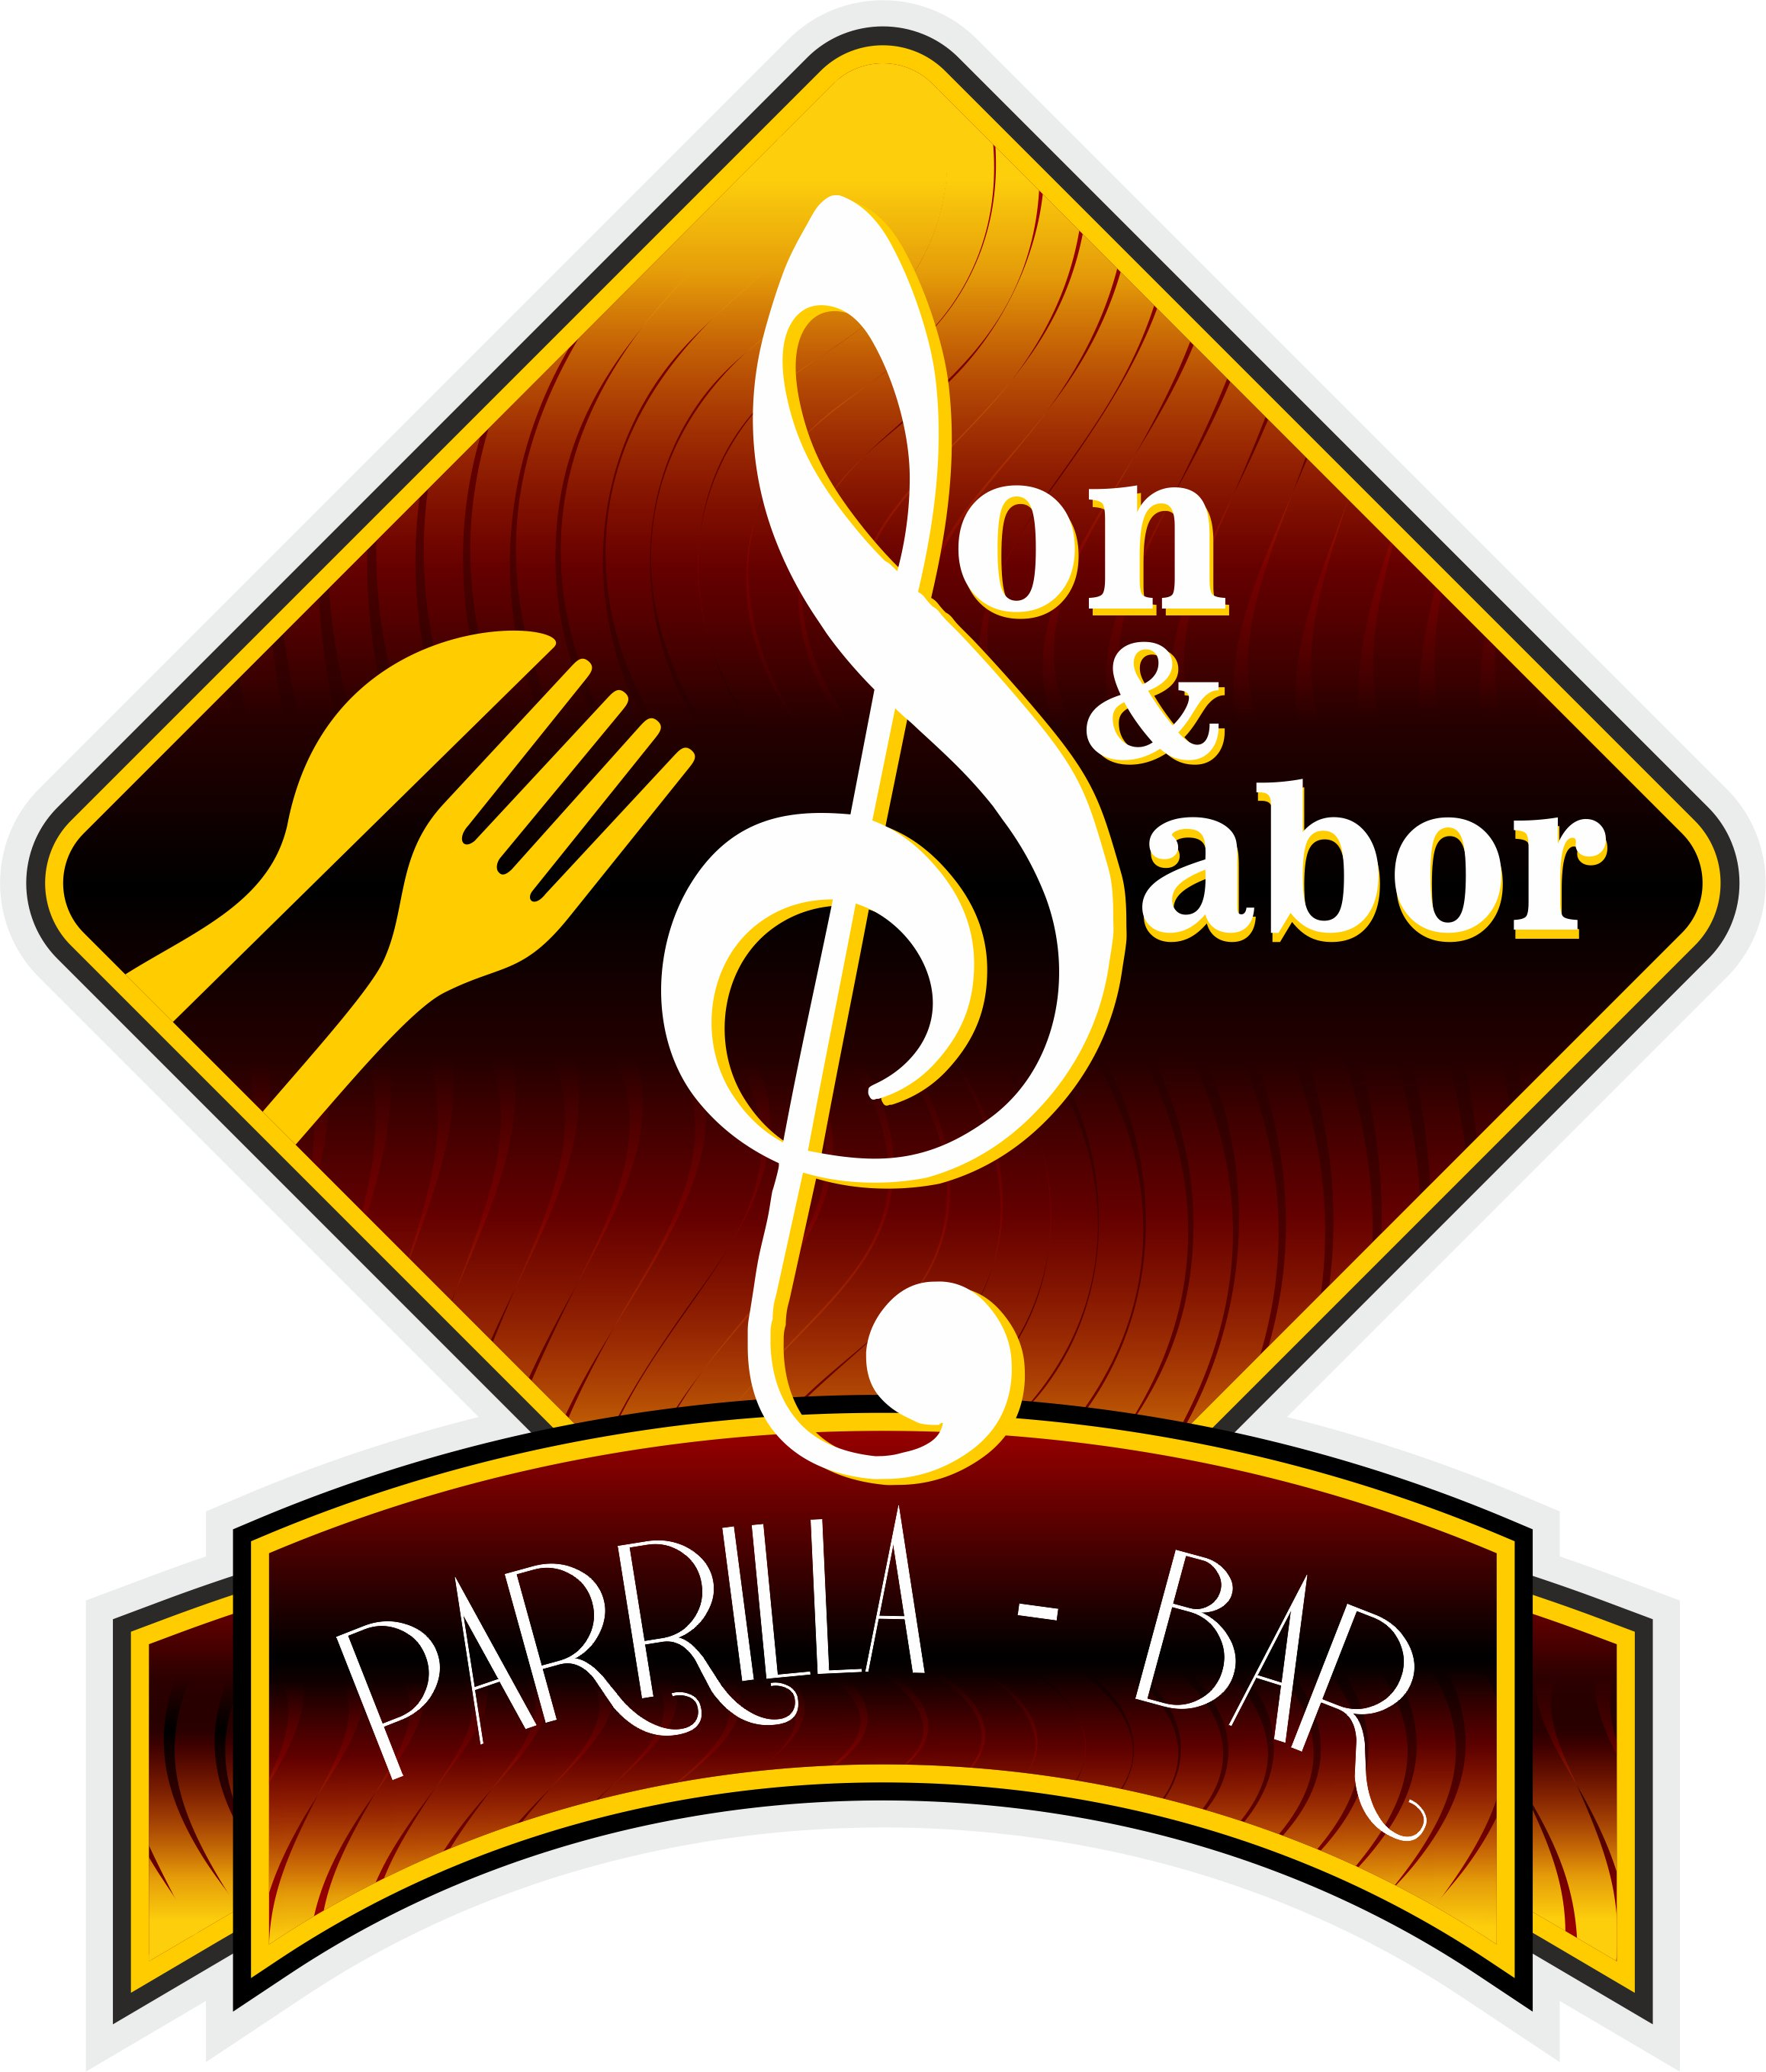 Son &  Sabor Parrilla Bar